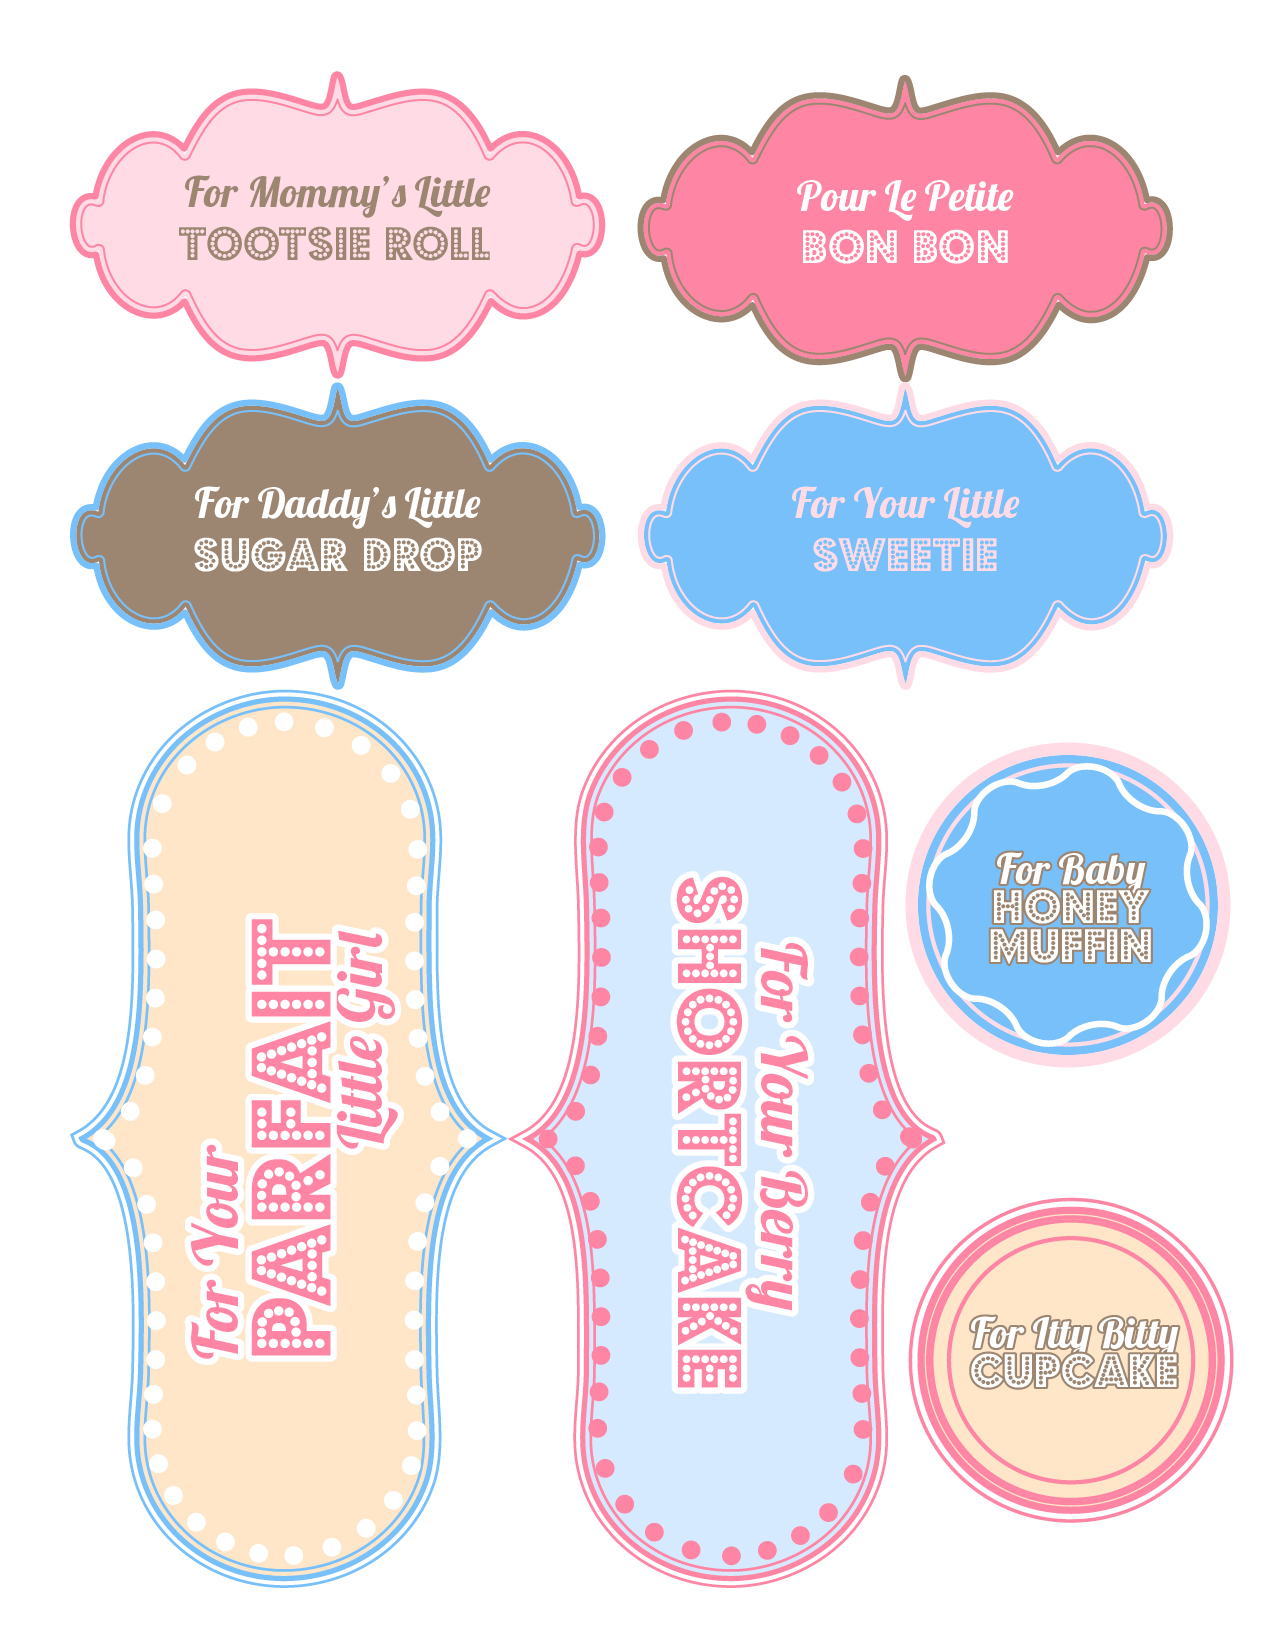 Baby shower gifts free printable sweet anne designs baby shower gift printable negle Image collections